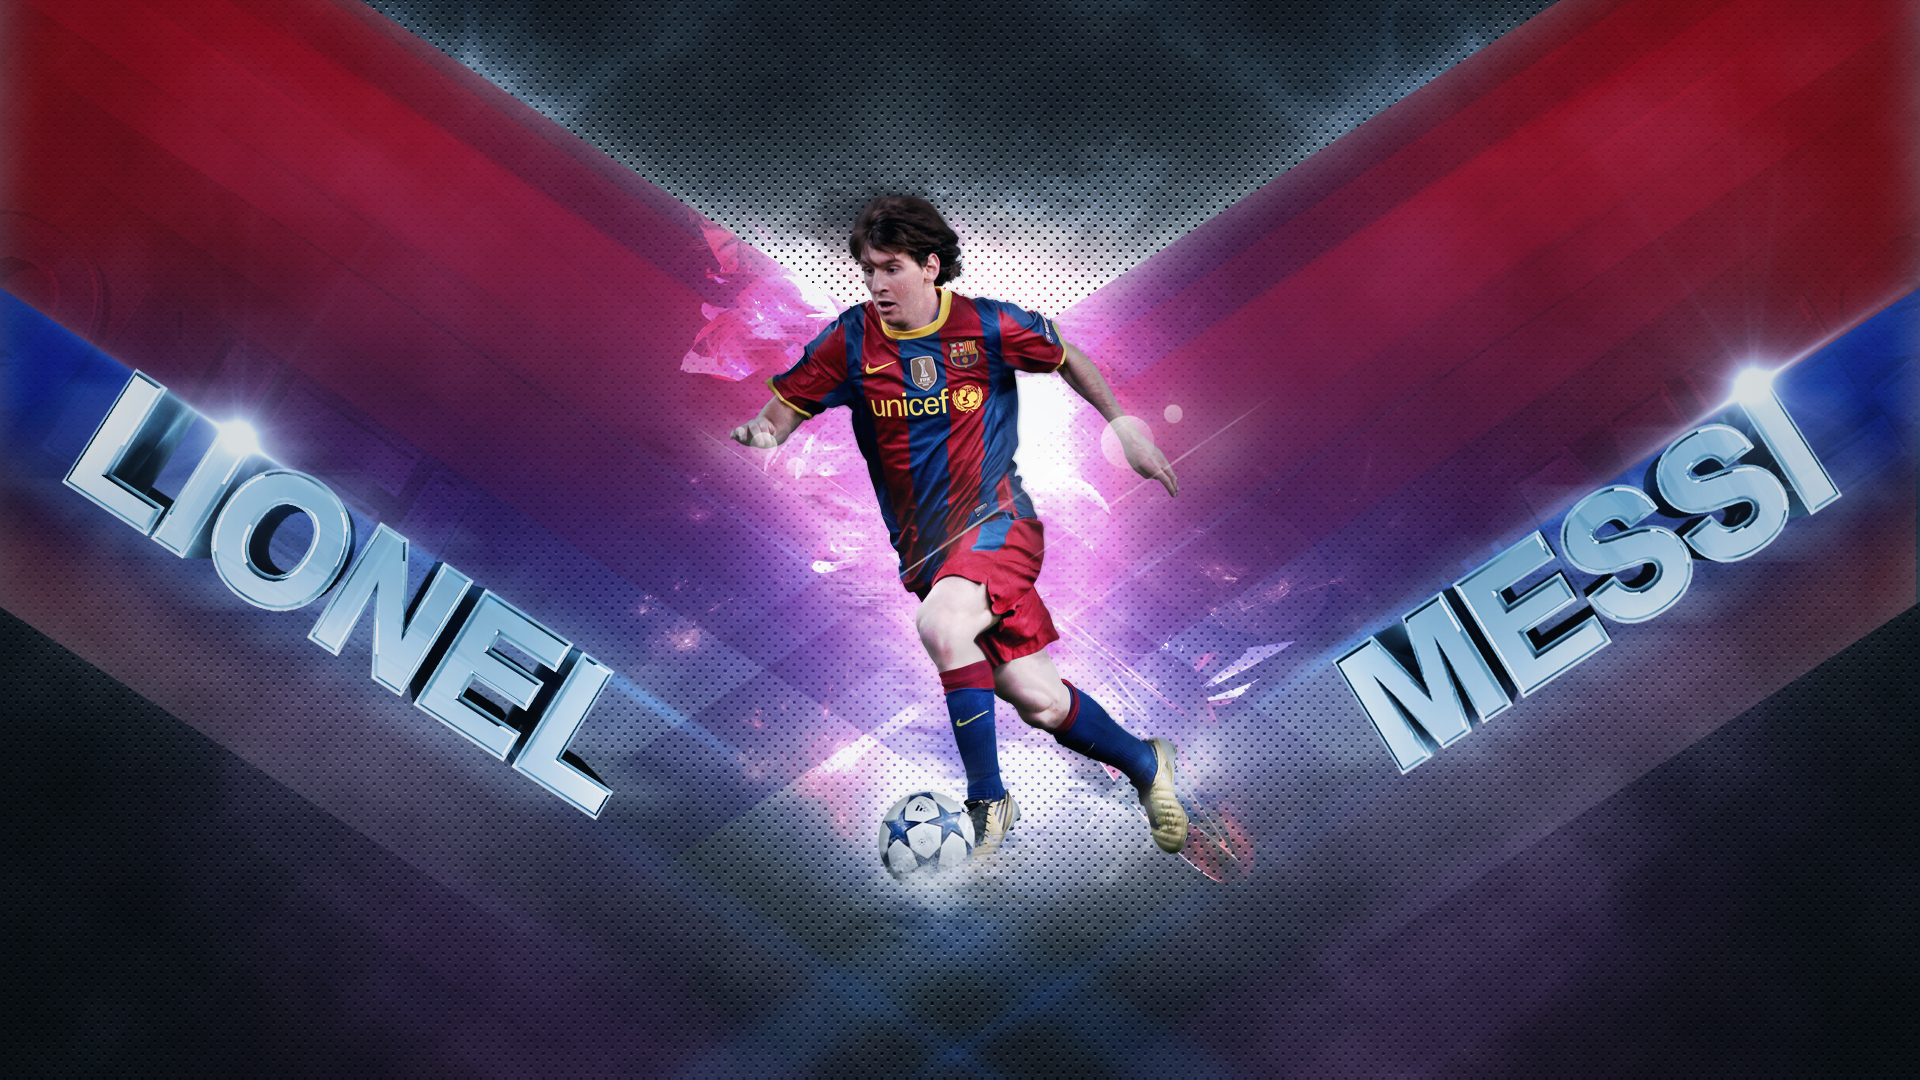 lionel messi wallpapers for desktop